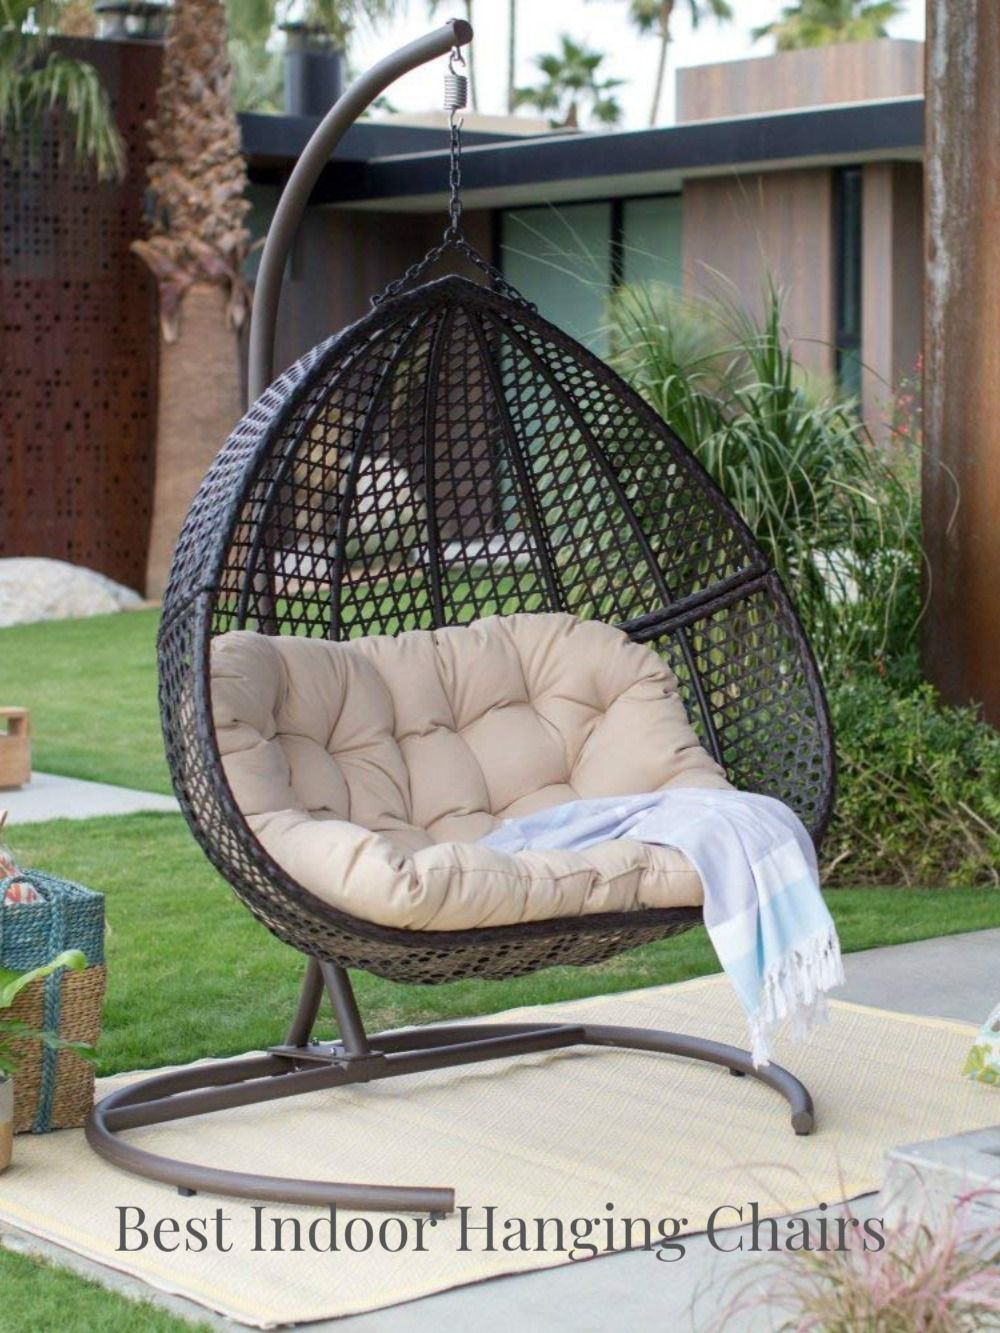 Best Indoor Hanging Chairs In 2020 Hanging Egg Chair Patio Furnishings Patio Furniture Makeover